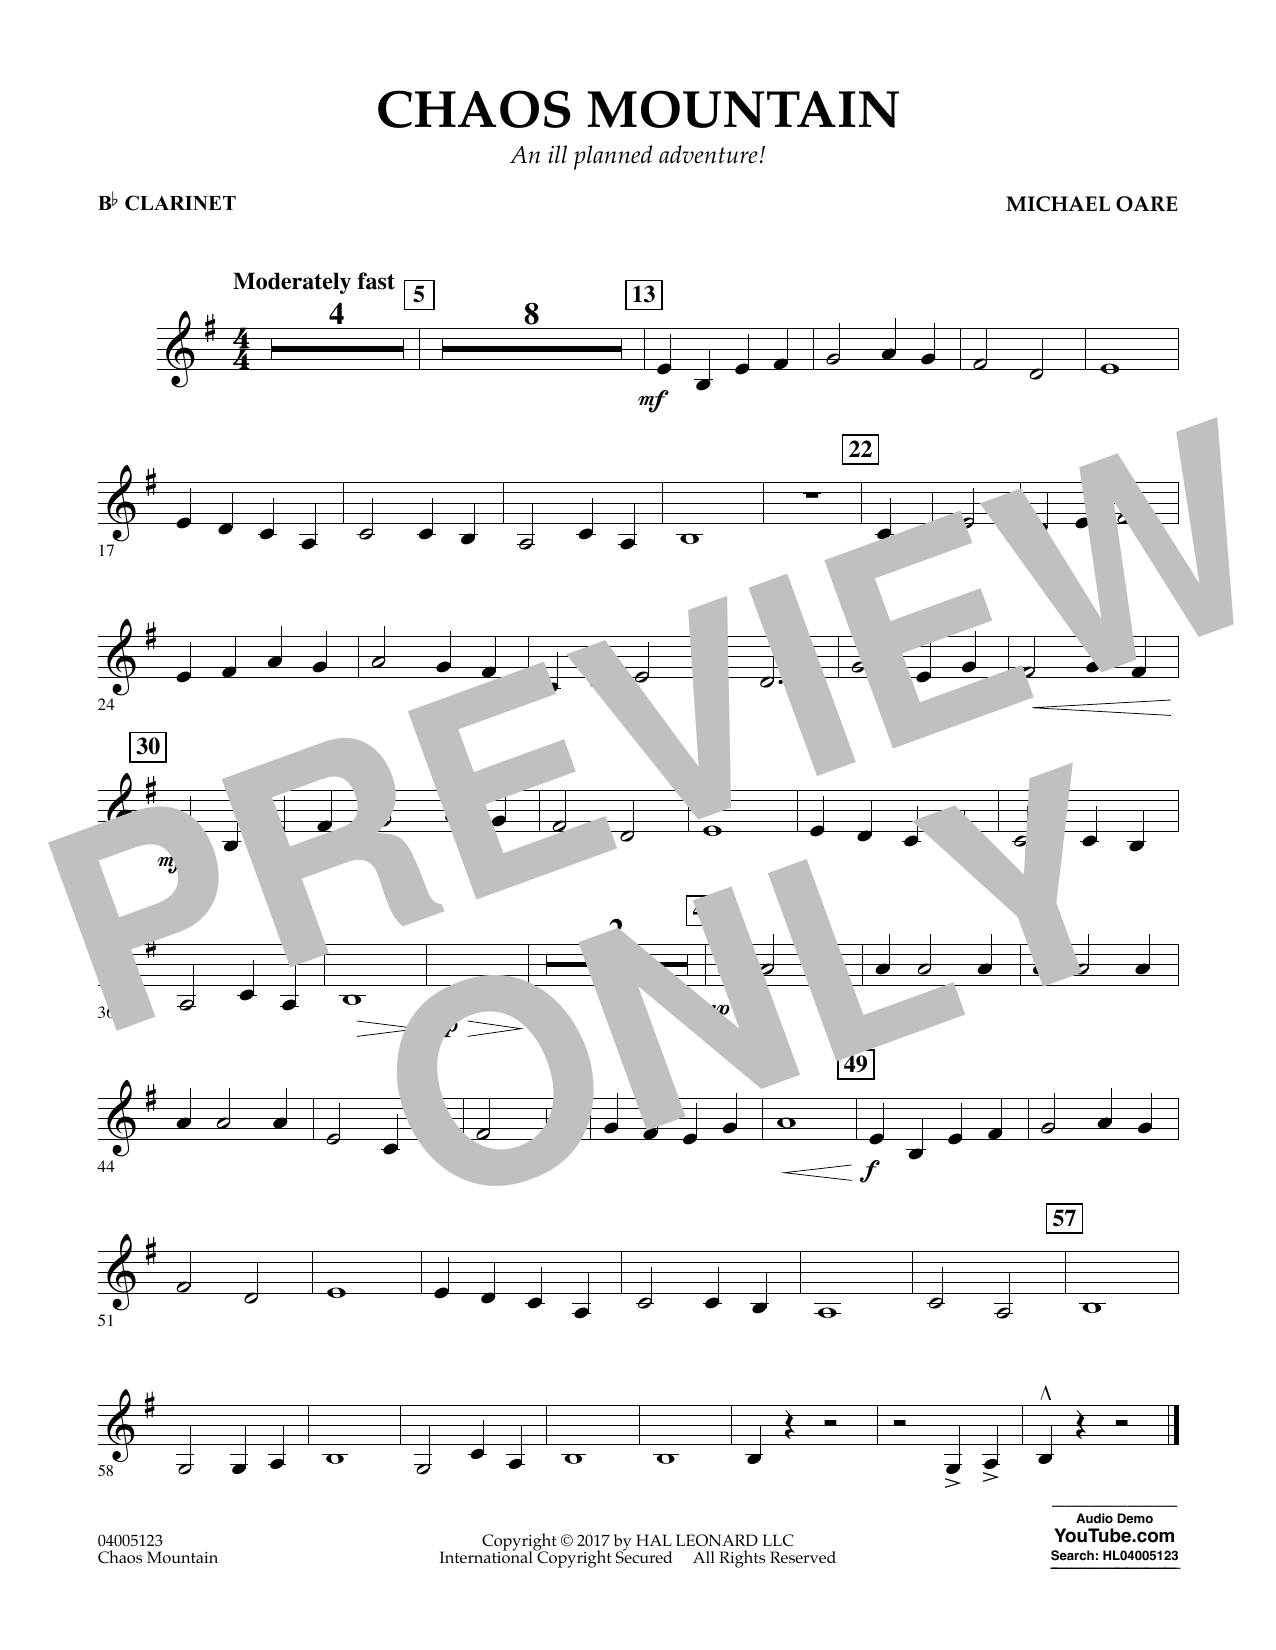 Michael Oare Chaos Mountain - Bb Clarinet sheet music notes and chords. Download Printable PDF.